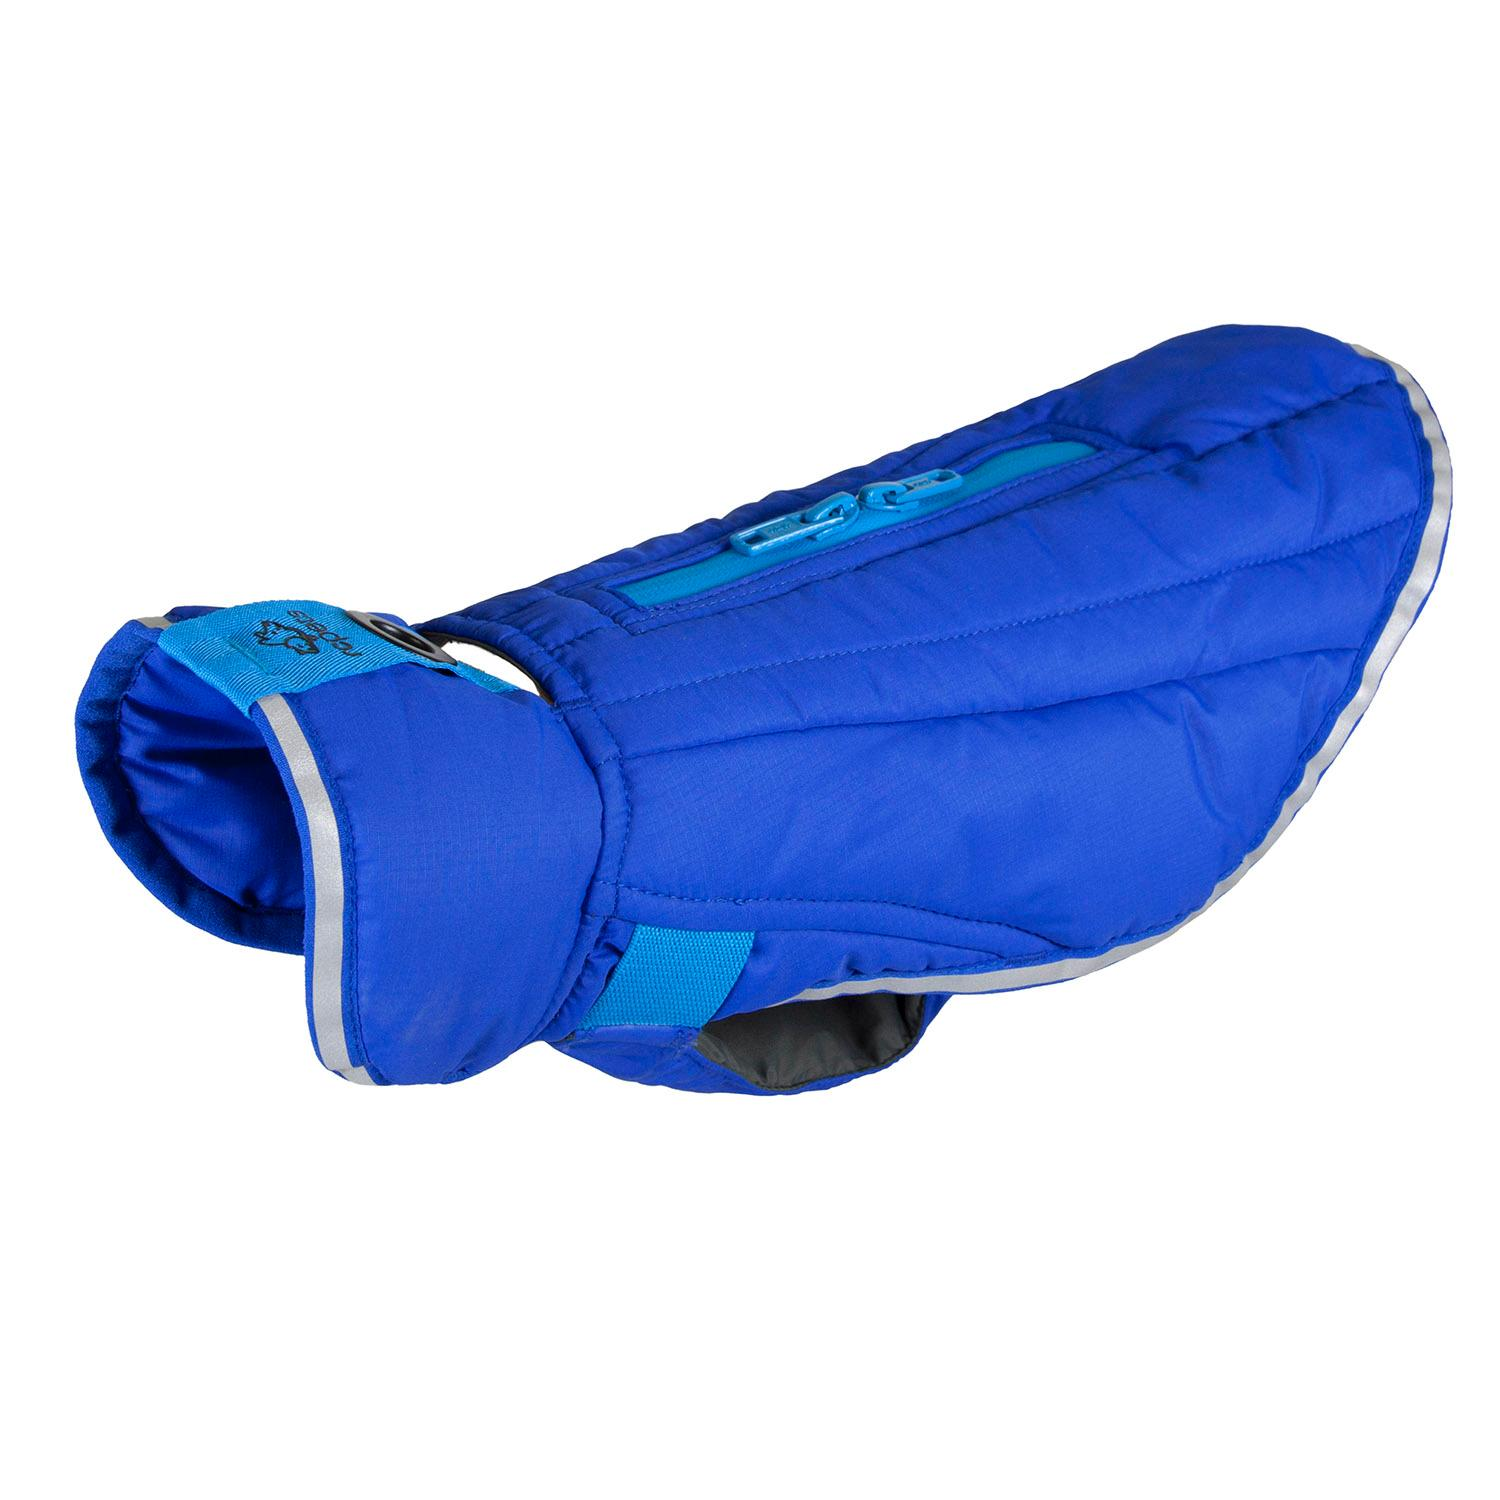 Nimbus Puffer Dog Coat - Royal Blue and Cyan